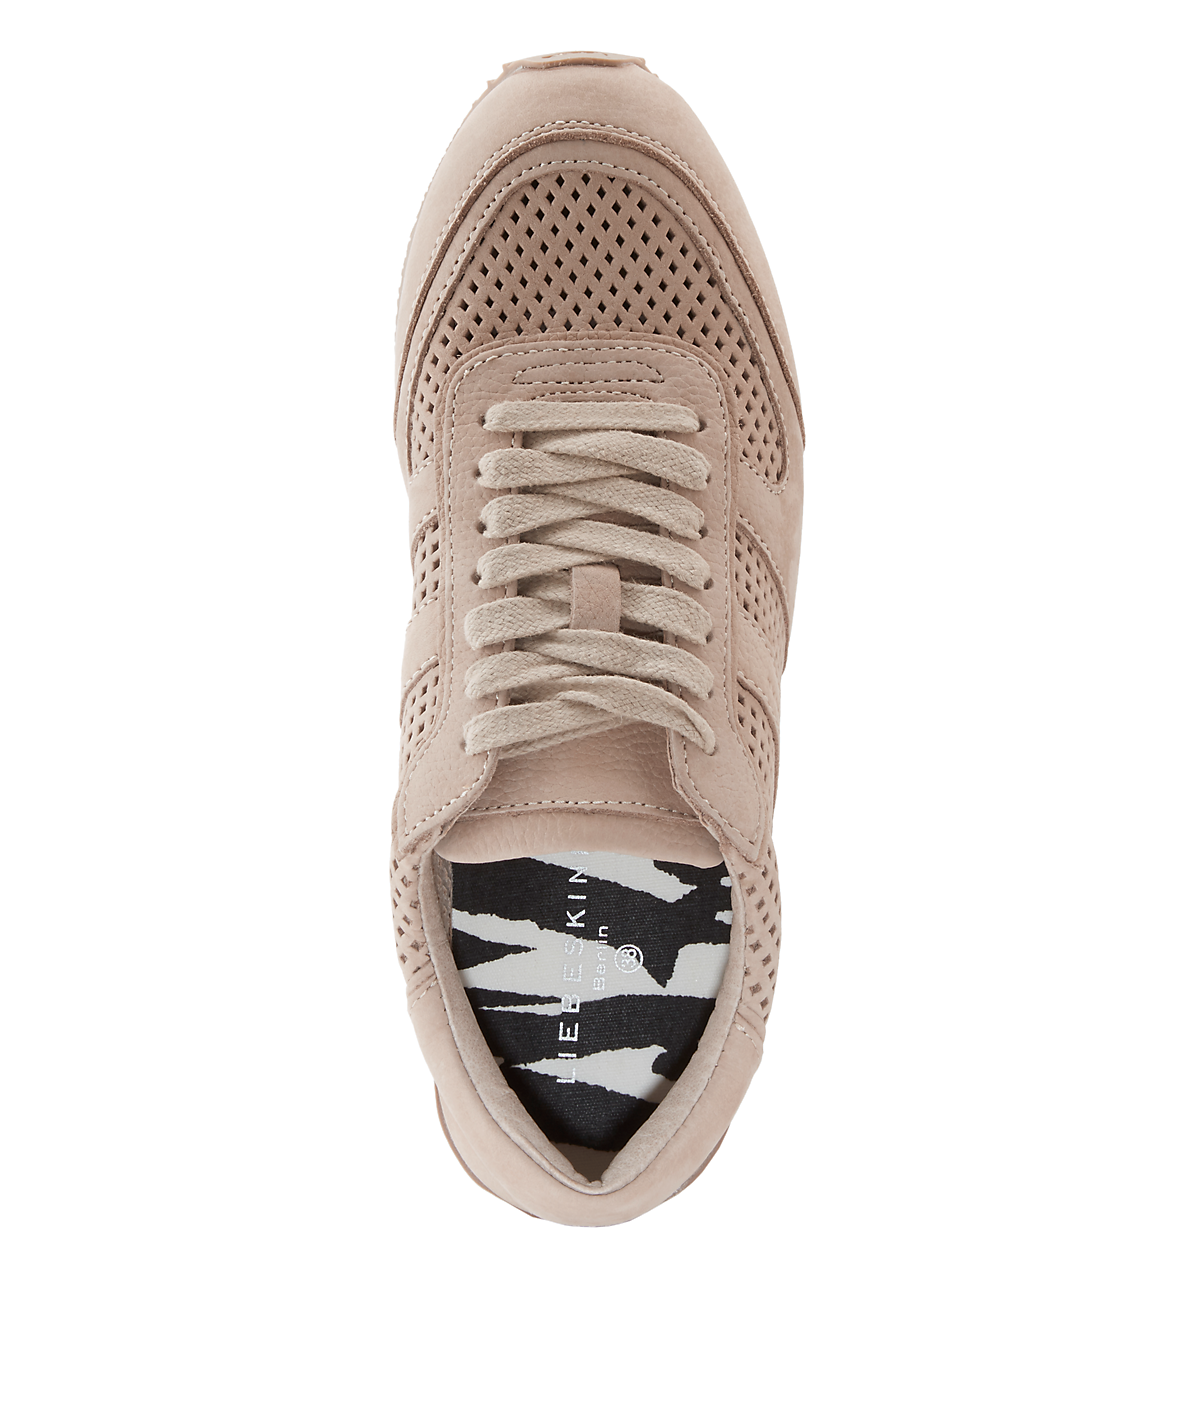 Perforated sneaker LS0111 from liebeskind